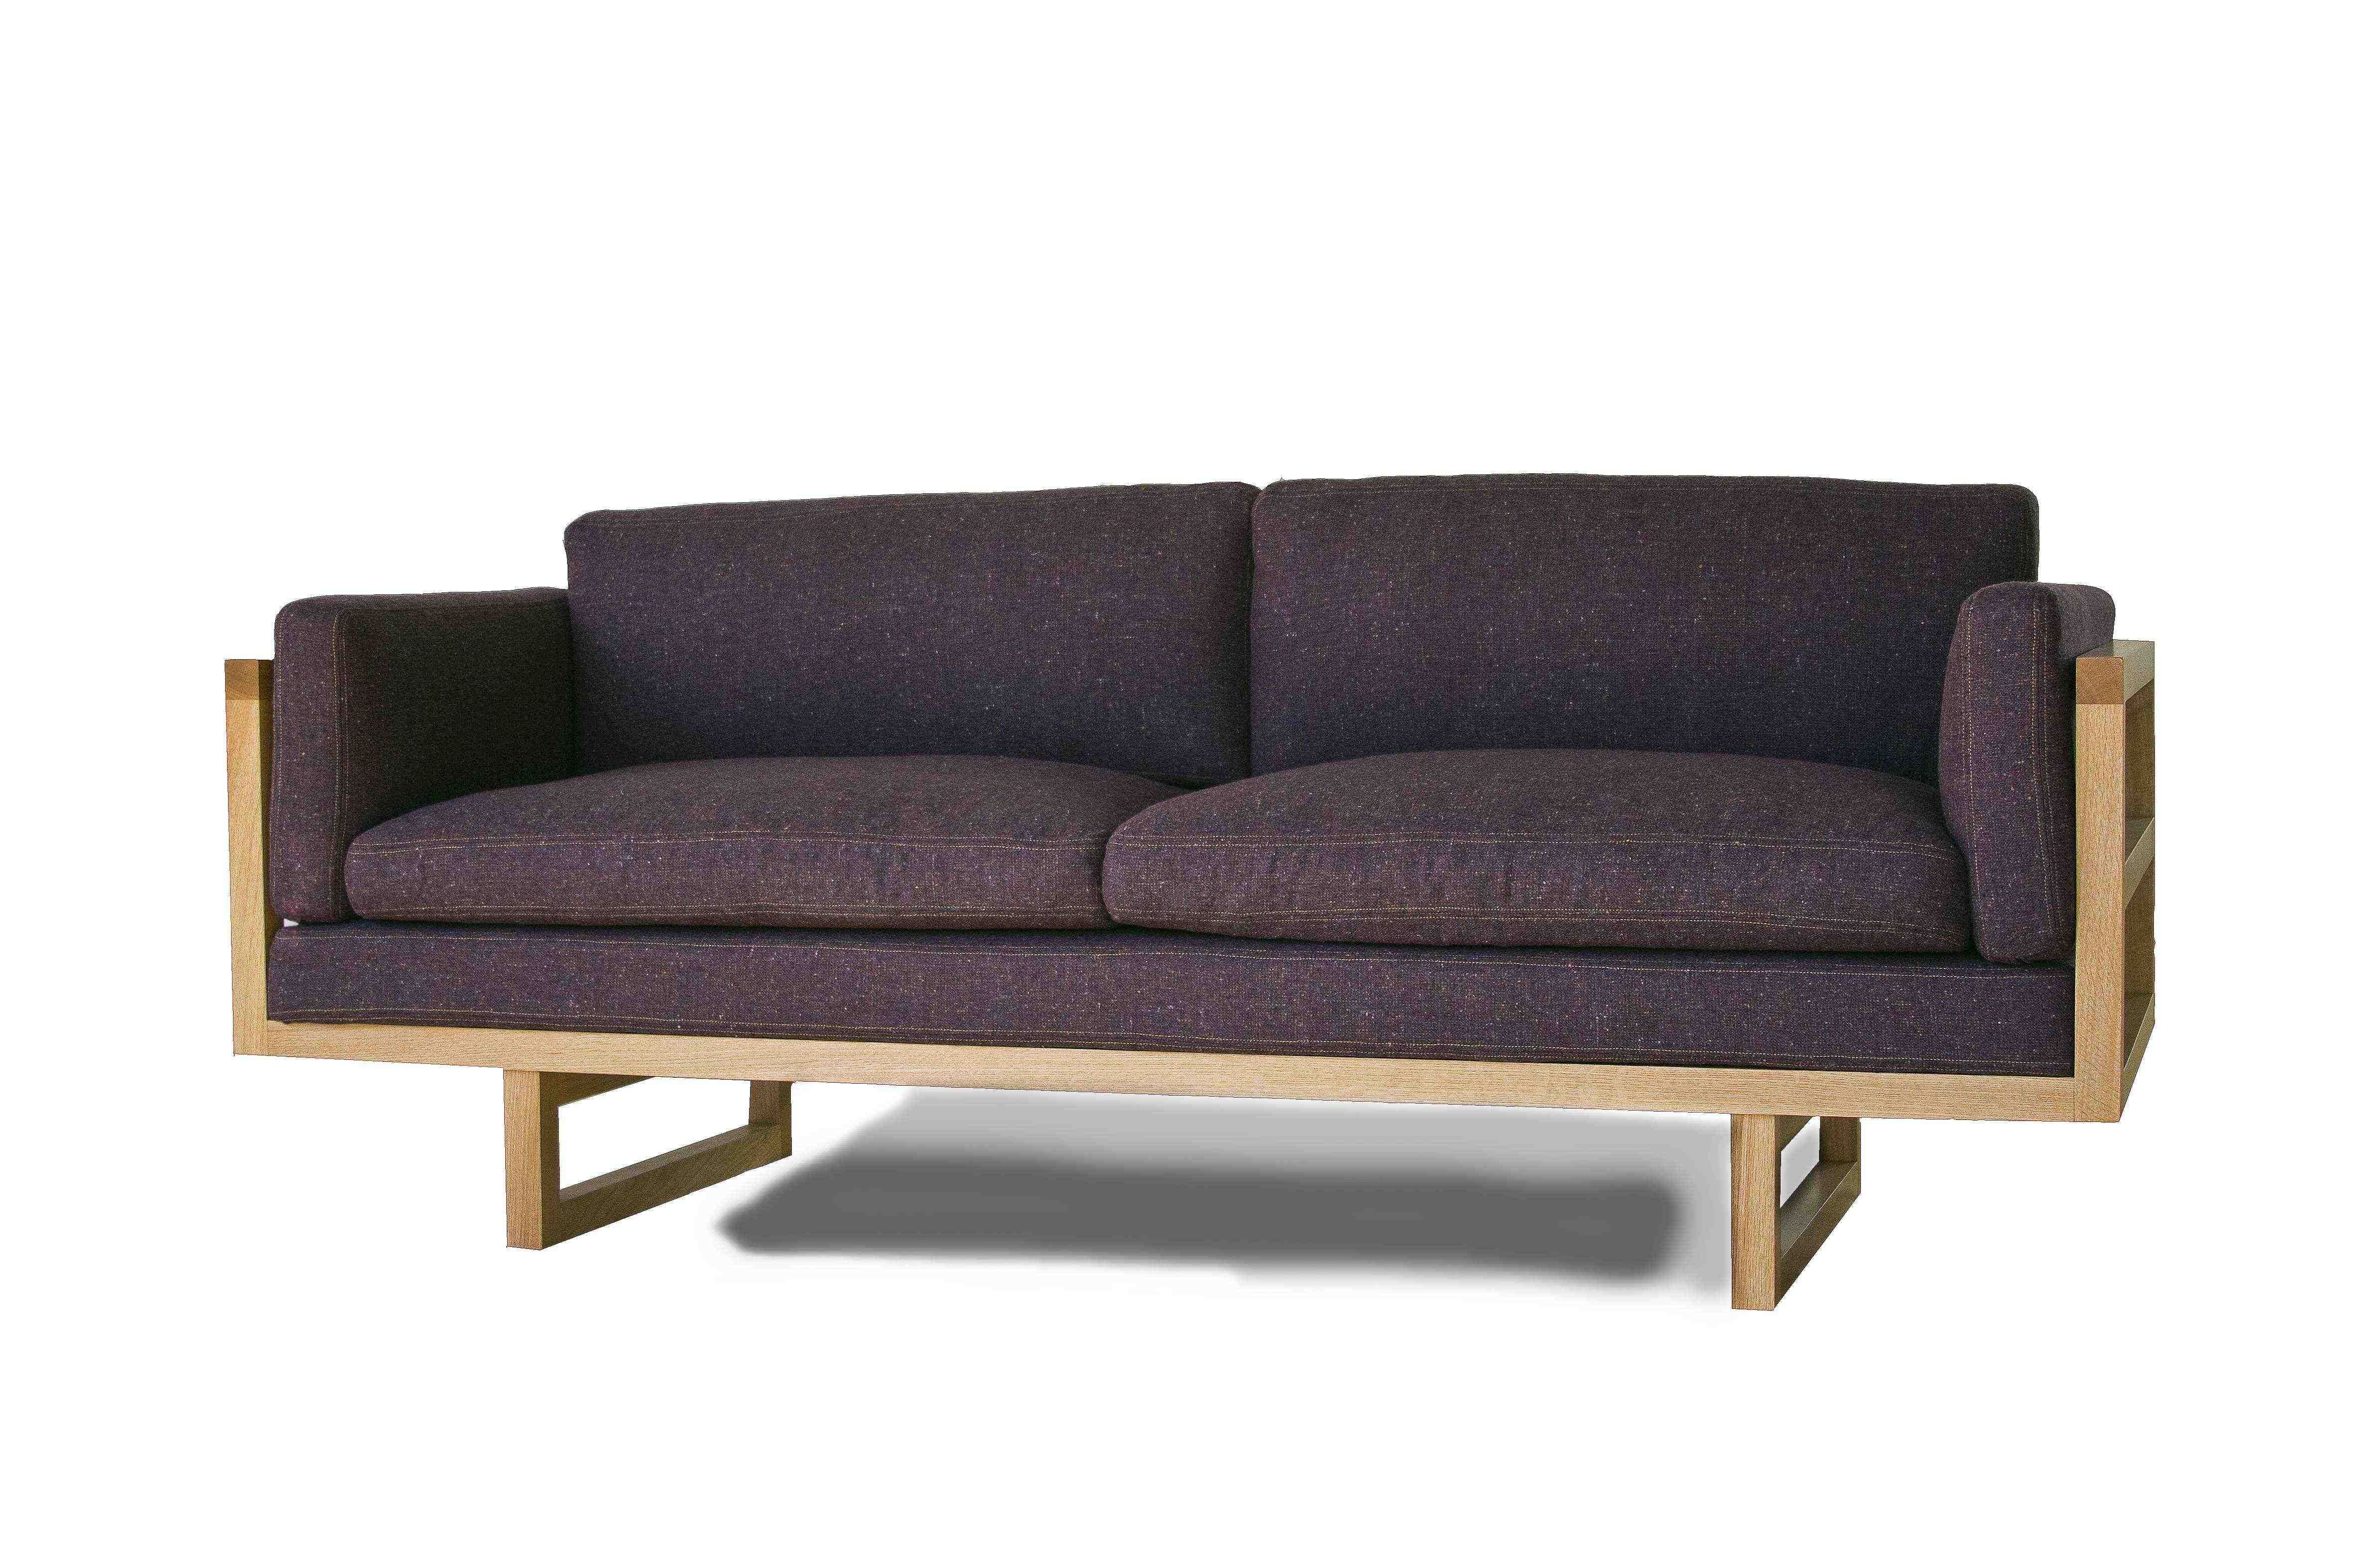 Superb Oak Framed Sofa By Ou0027Driscoll Furniture, Upholstered In Donegal Irish Tweed  Woven